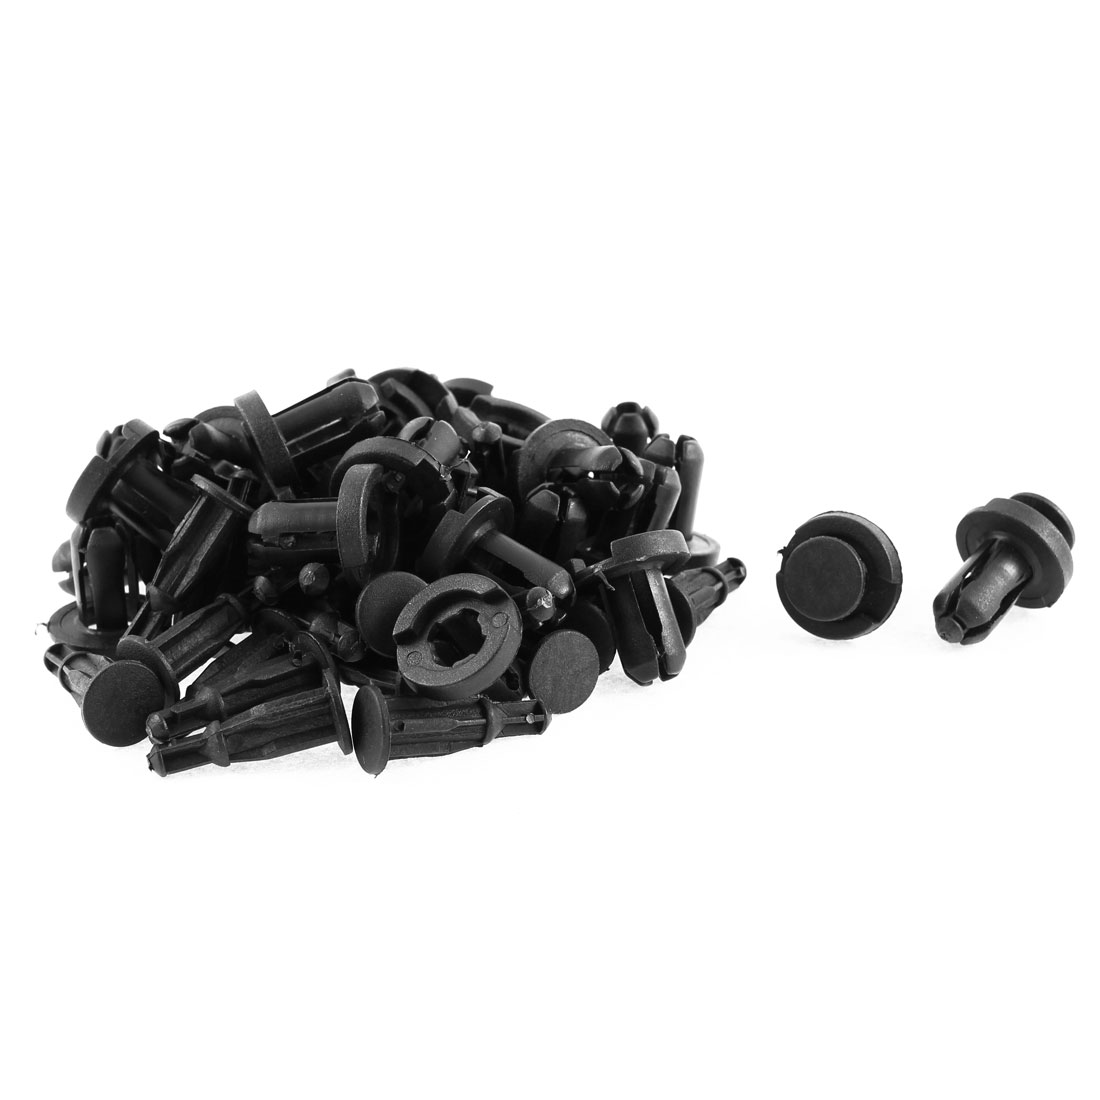 30 Pcs 20mm x 11mm Black Plastic Rivet Bumper Lining Trim Panel Retainer Fastener Clips